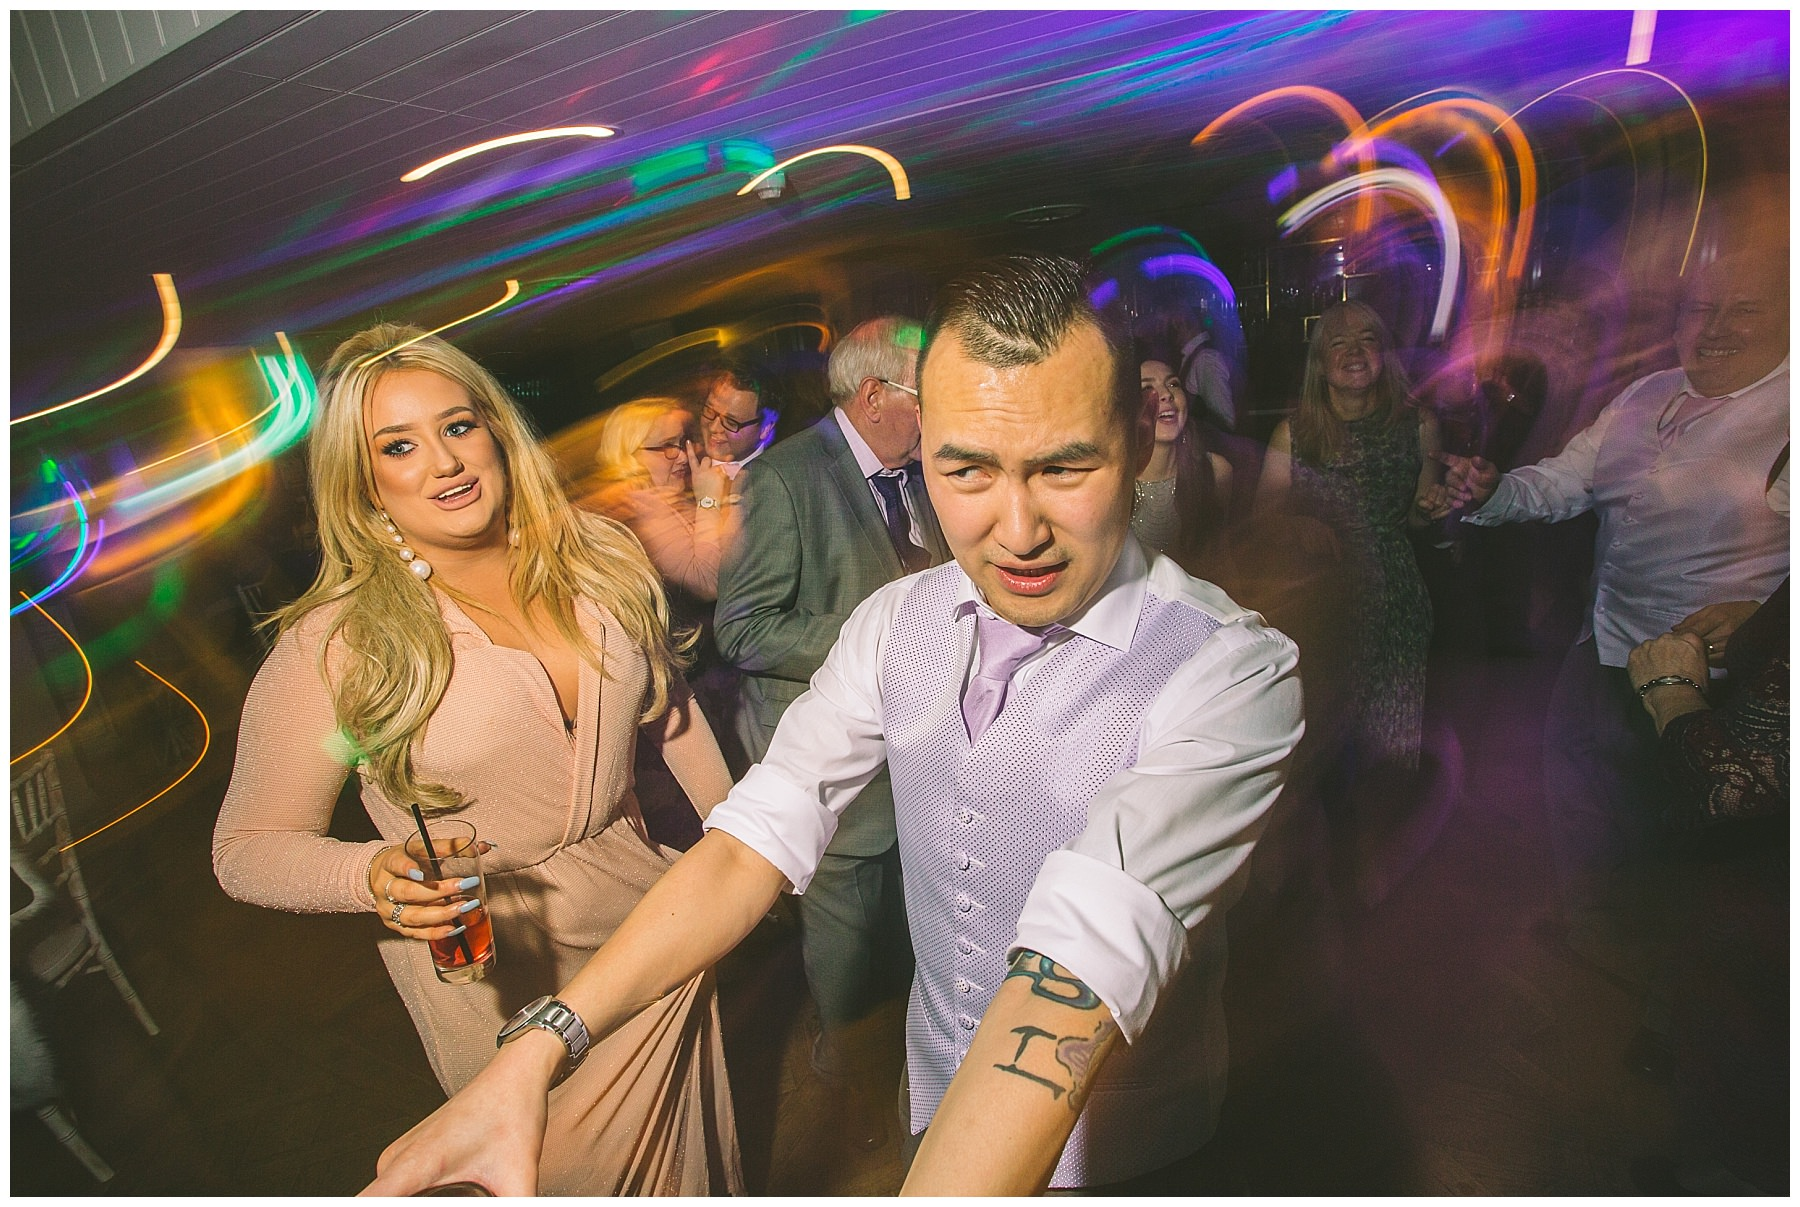 dancefloor party at Winter wedding